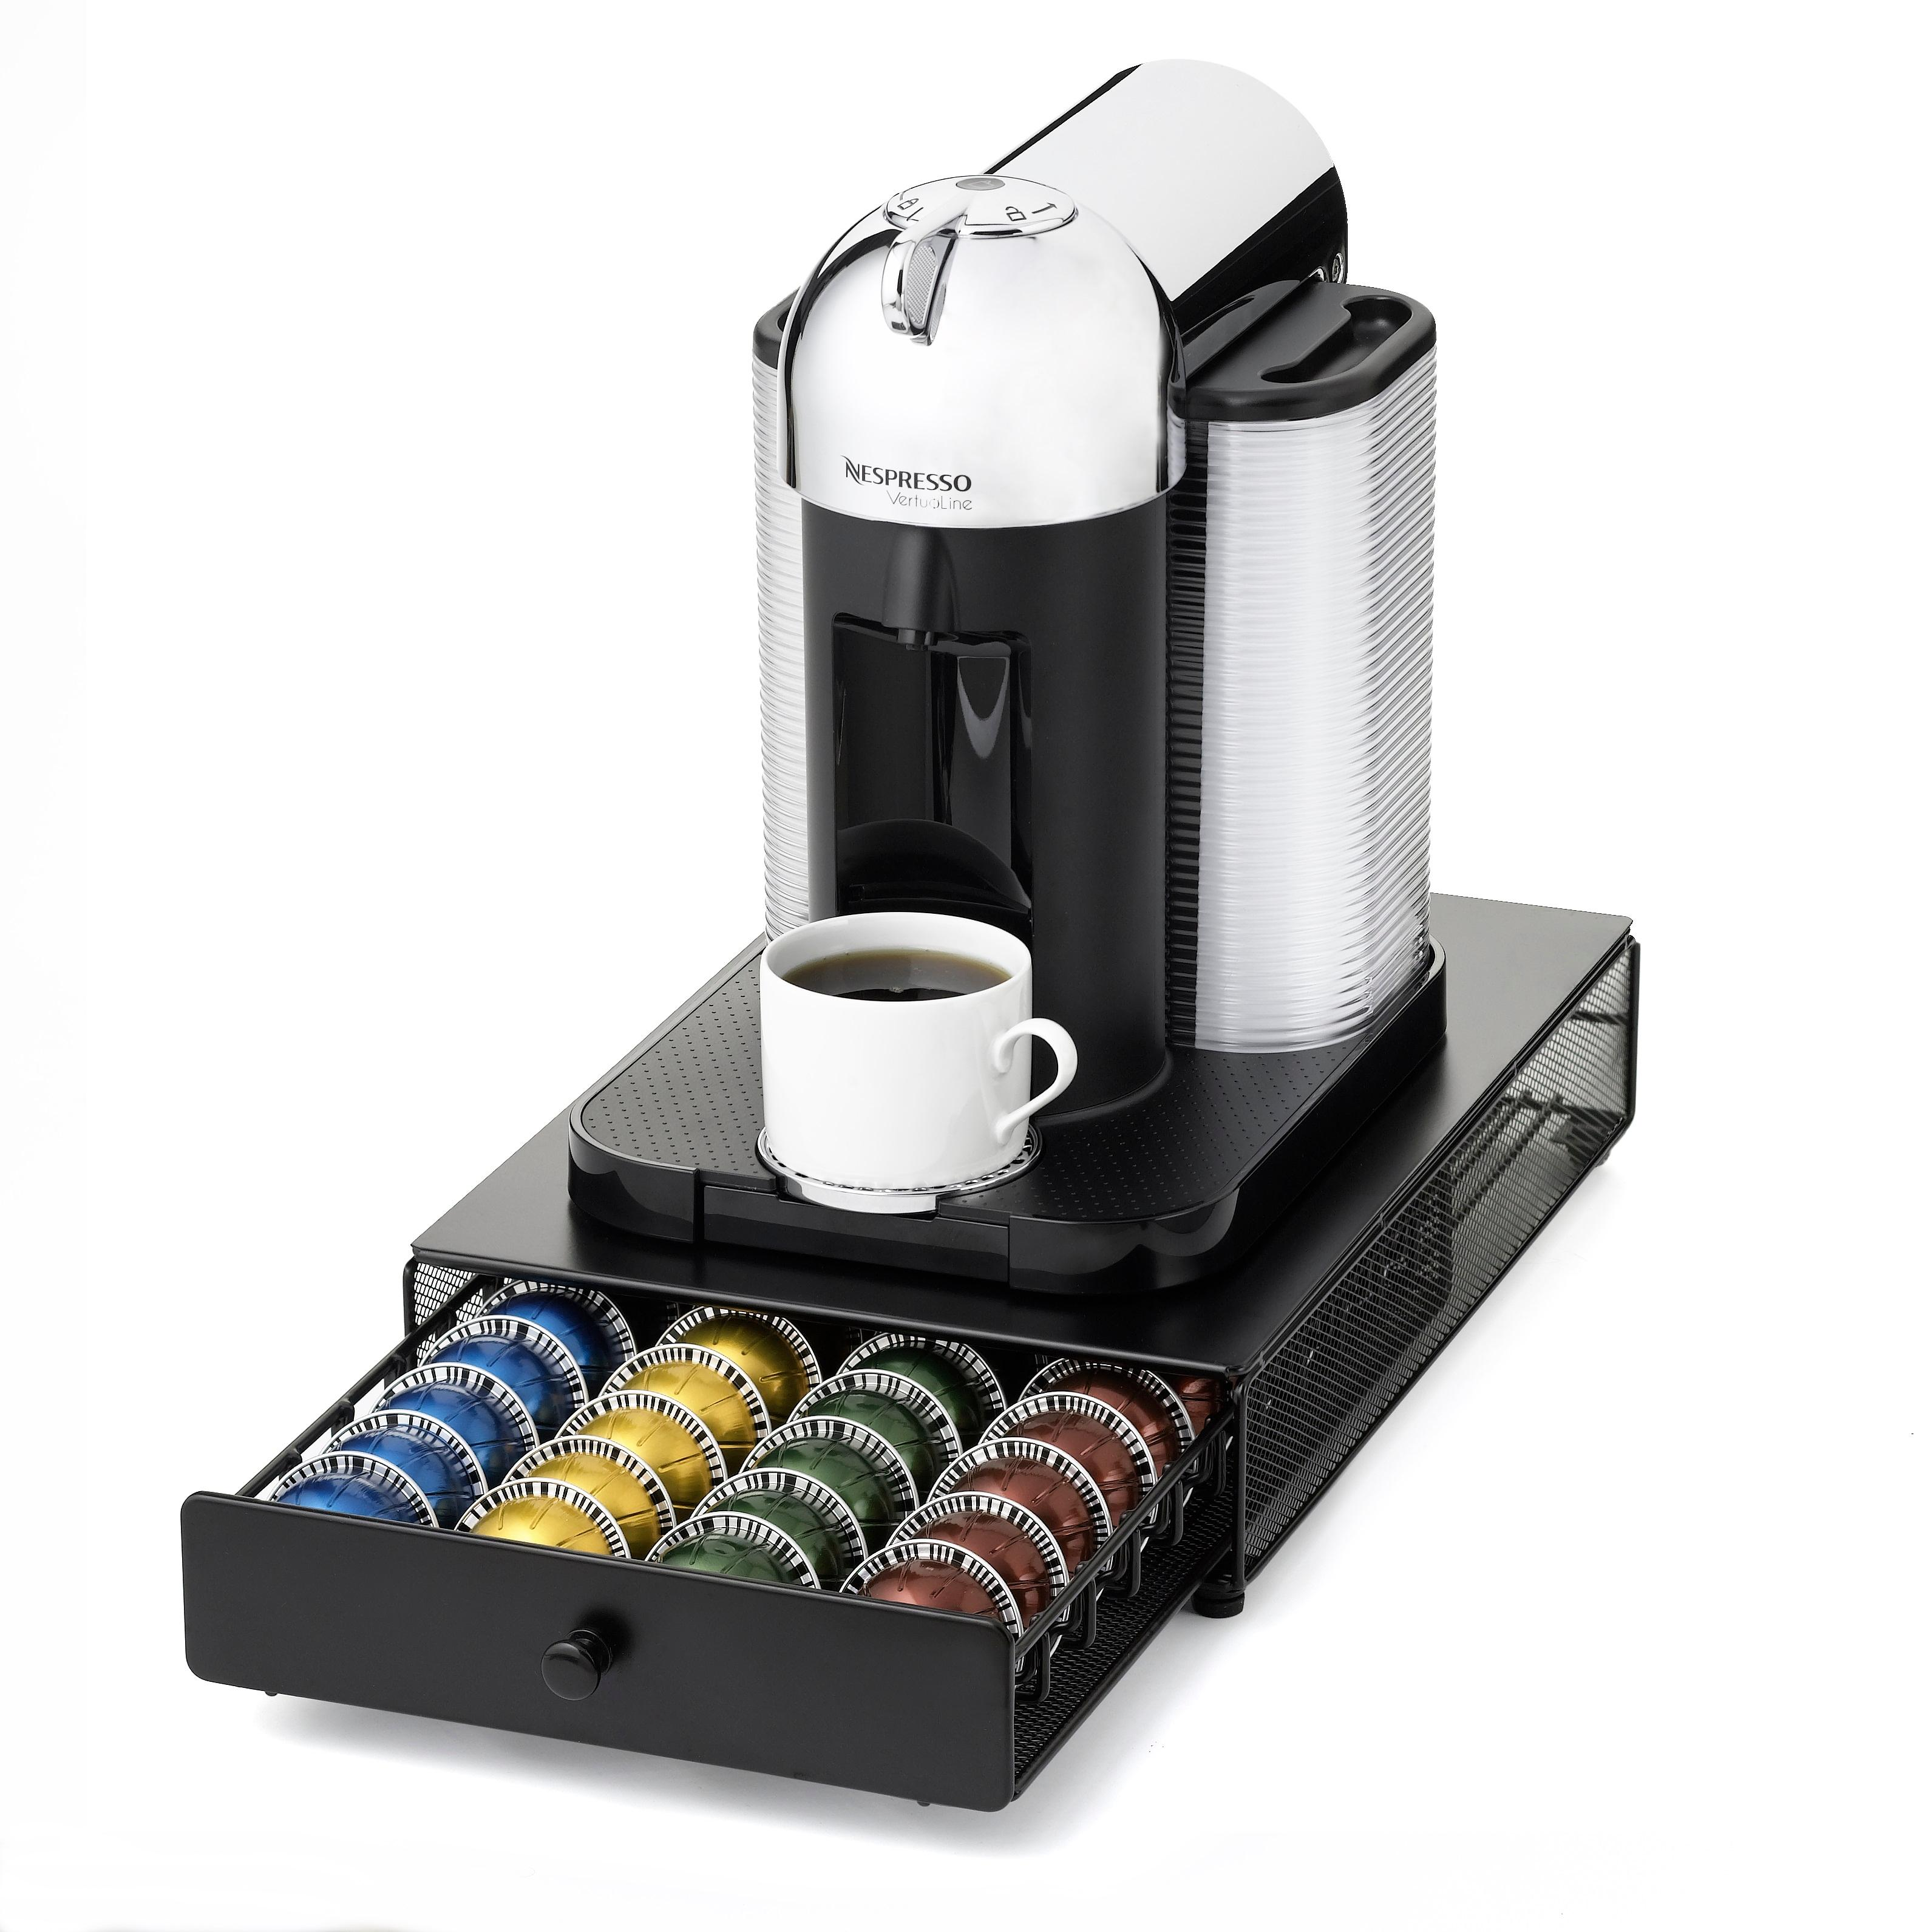 what is the application nespresso